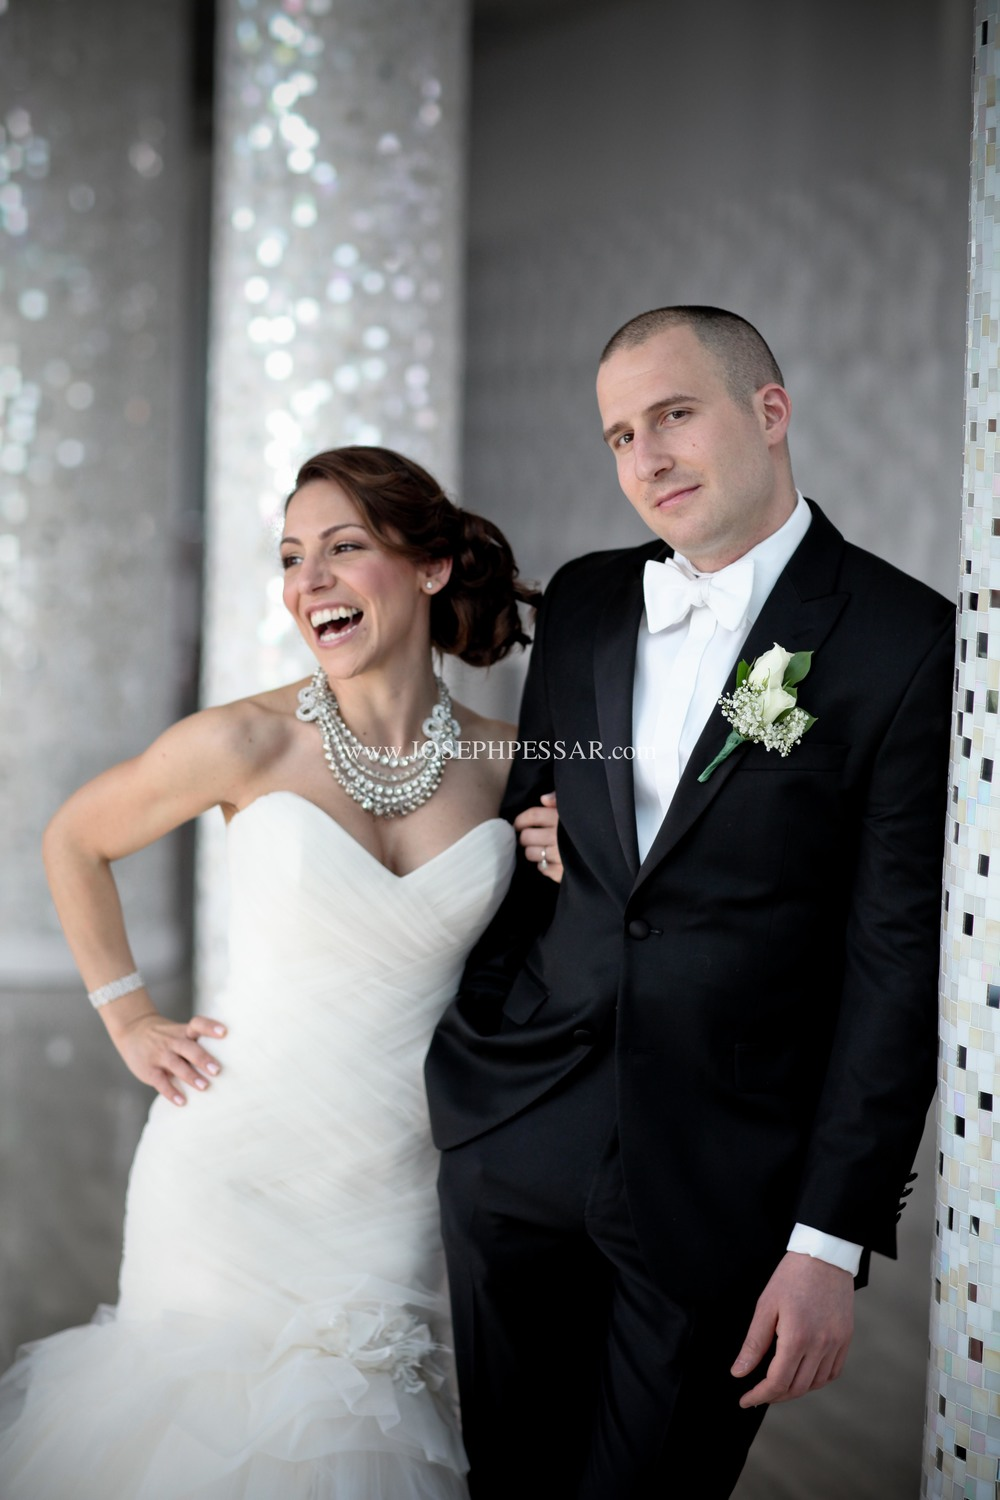 nyc_wedding_photographer0018.jpg